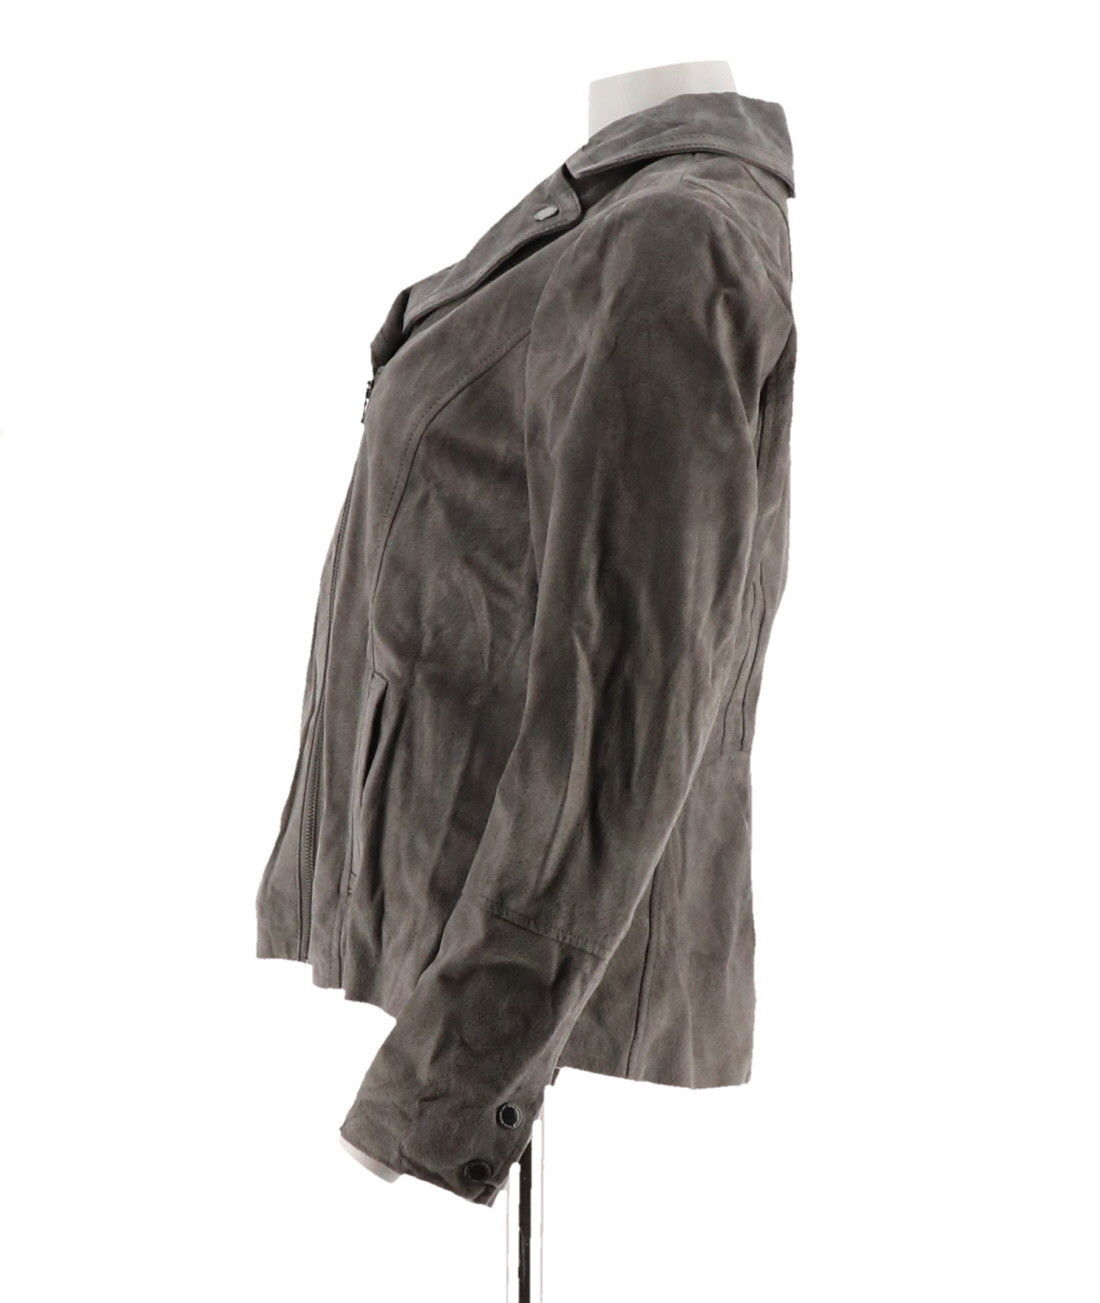 Isaac Mizrahi Suede Motorcycle Jacket Printed Lining Pockets Grey 8 NEW A293552